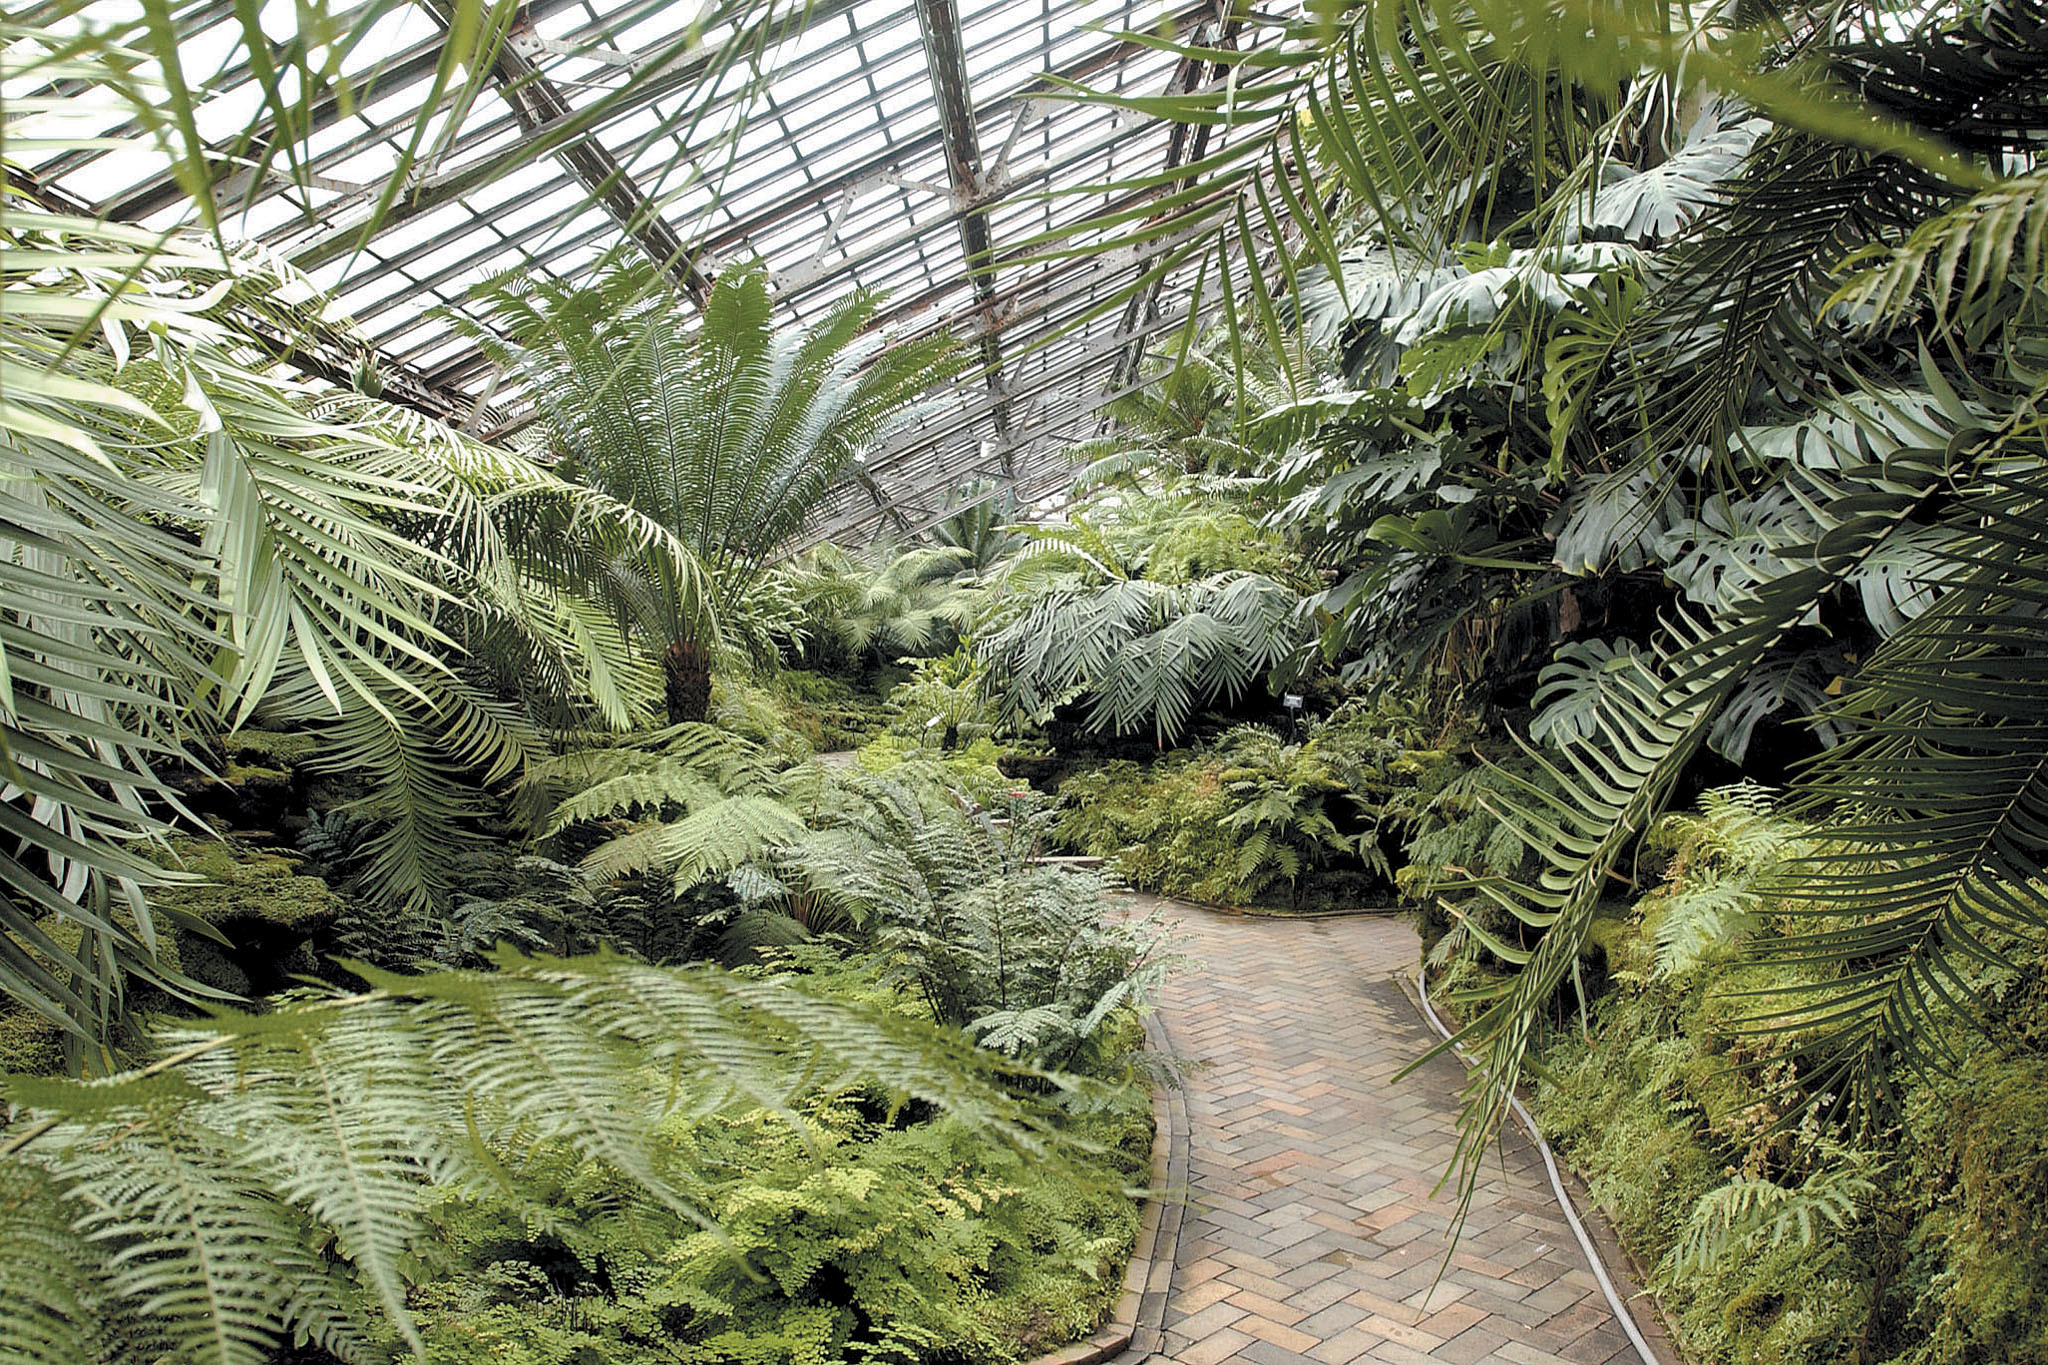 Play in the dirt at Garfield Park Conservatory